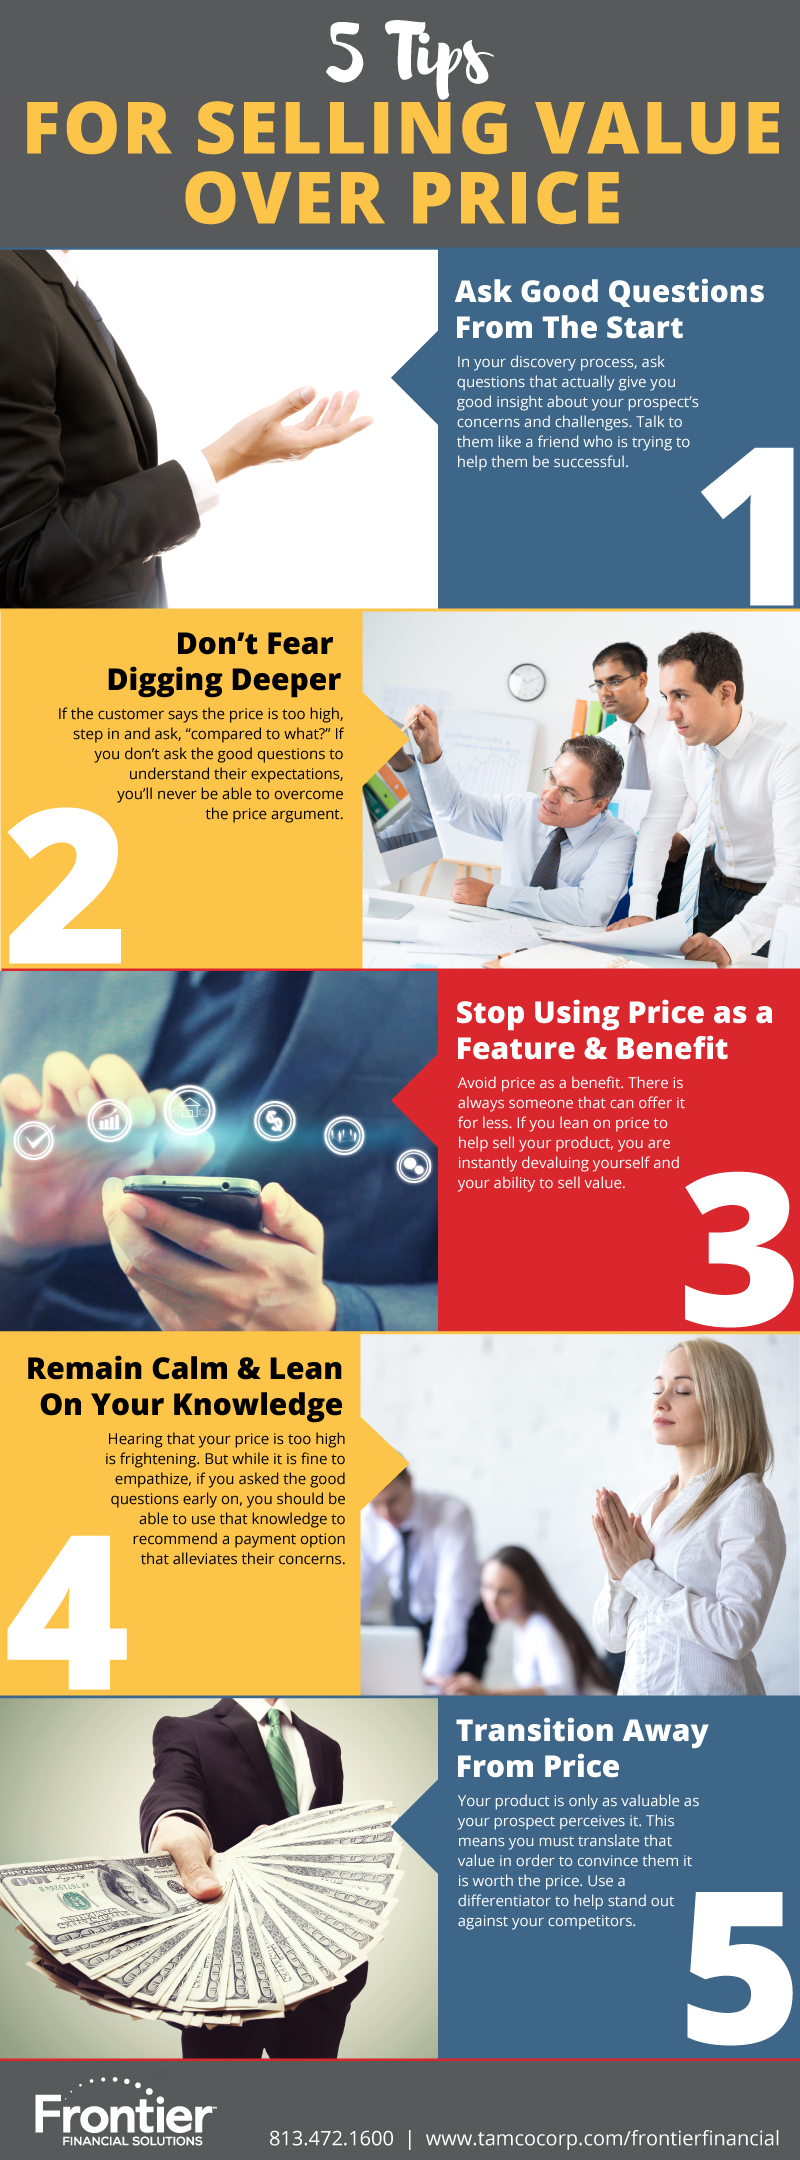 FFS---5-Tips-For-Selling-Value-Over-Price.png